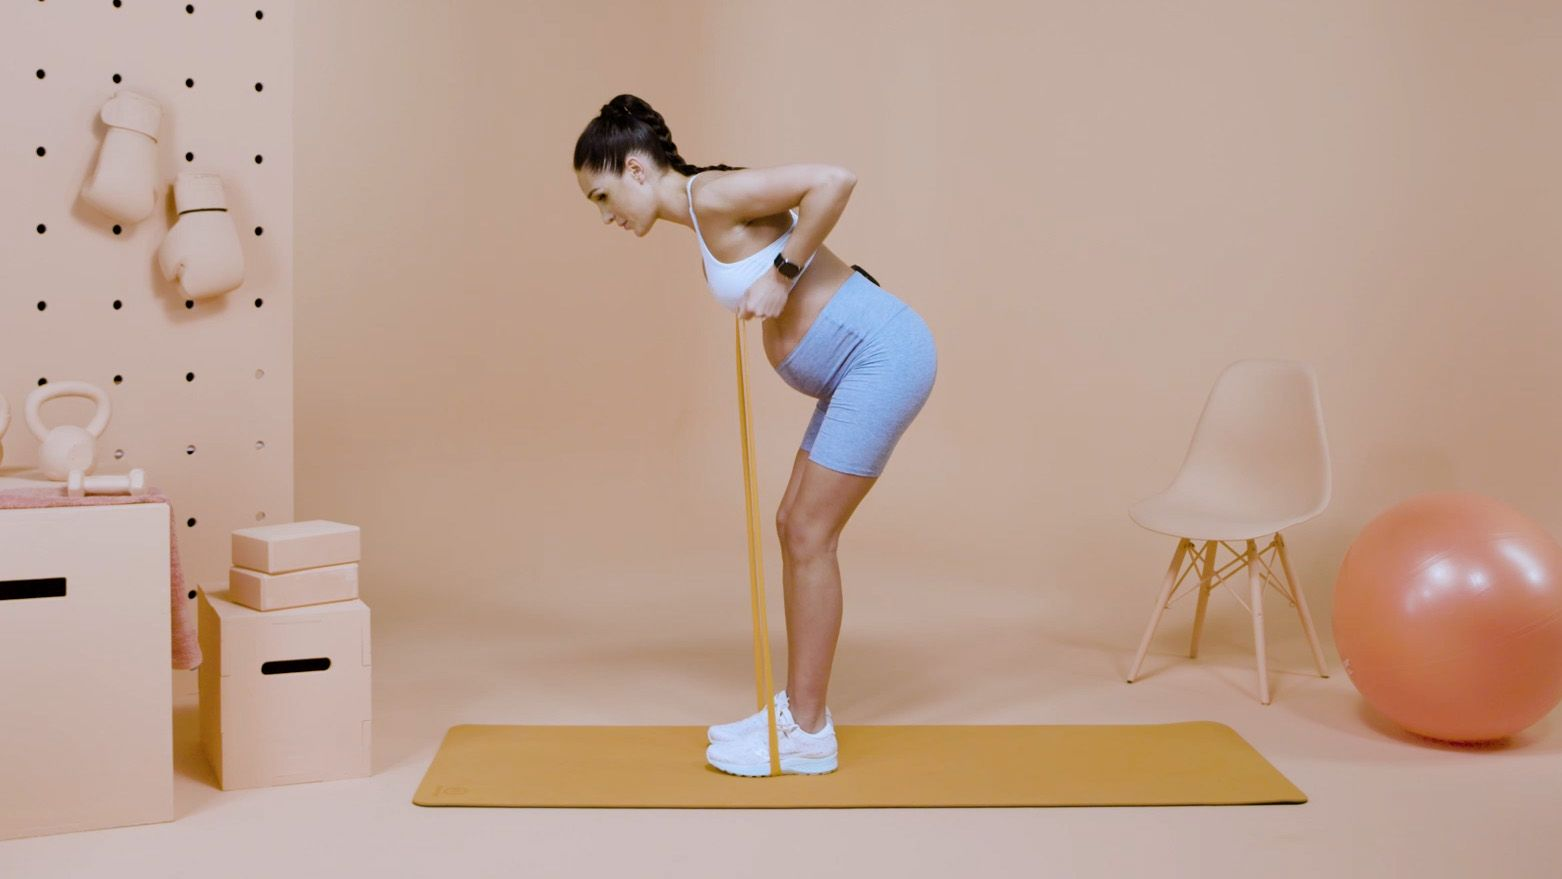 Kayla Itsines Swears By The Mediterranean Diet To Fuel Her Hardcore Workouts